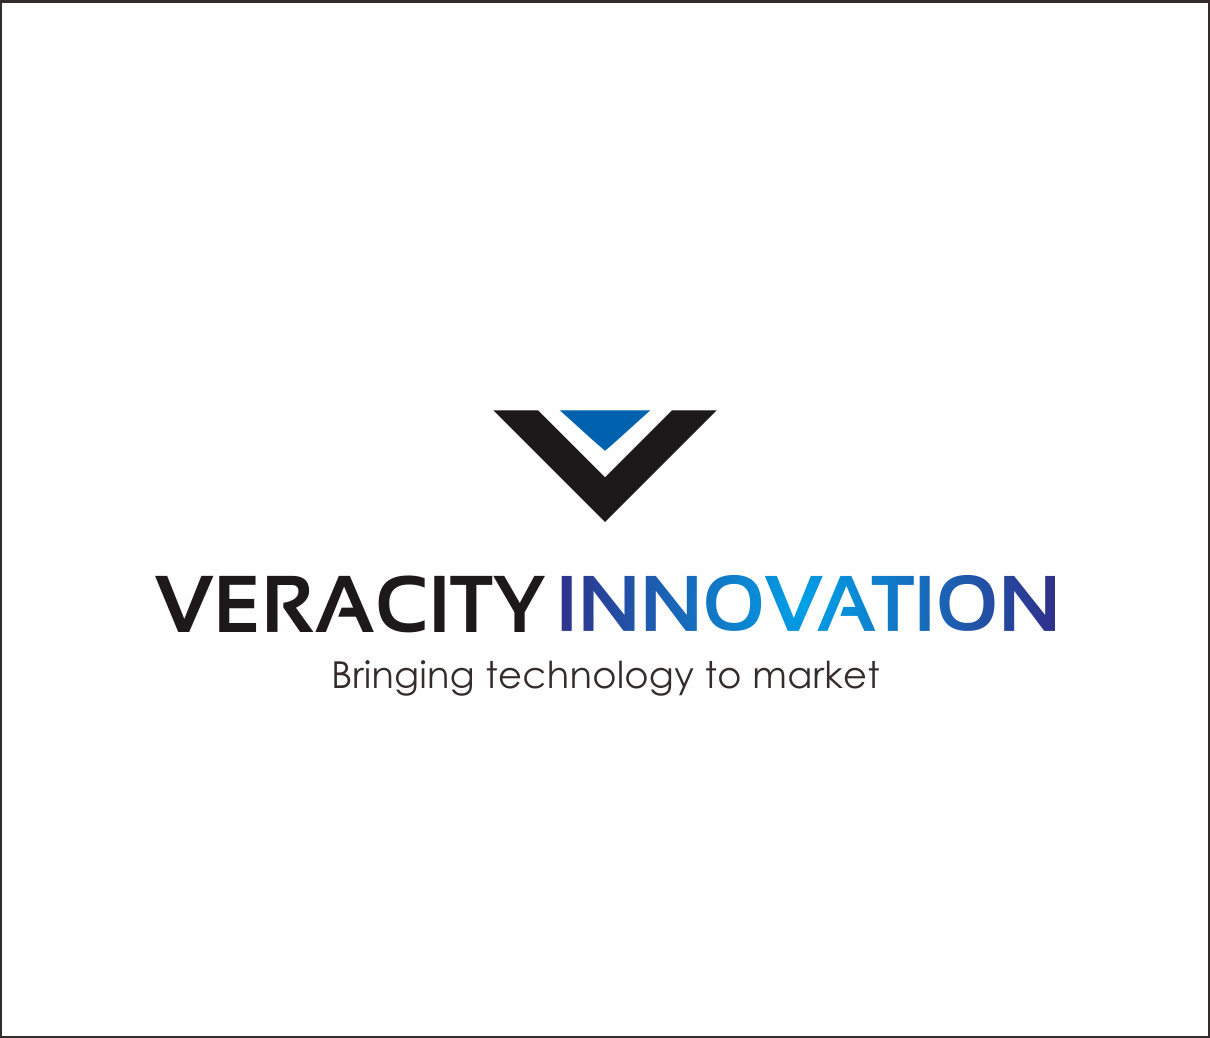 Logo Design by Armada Jamaluddin - Entry No. 191 in the Logo Design Contest Creative Logo Design for Veracity Innovation, LLC.